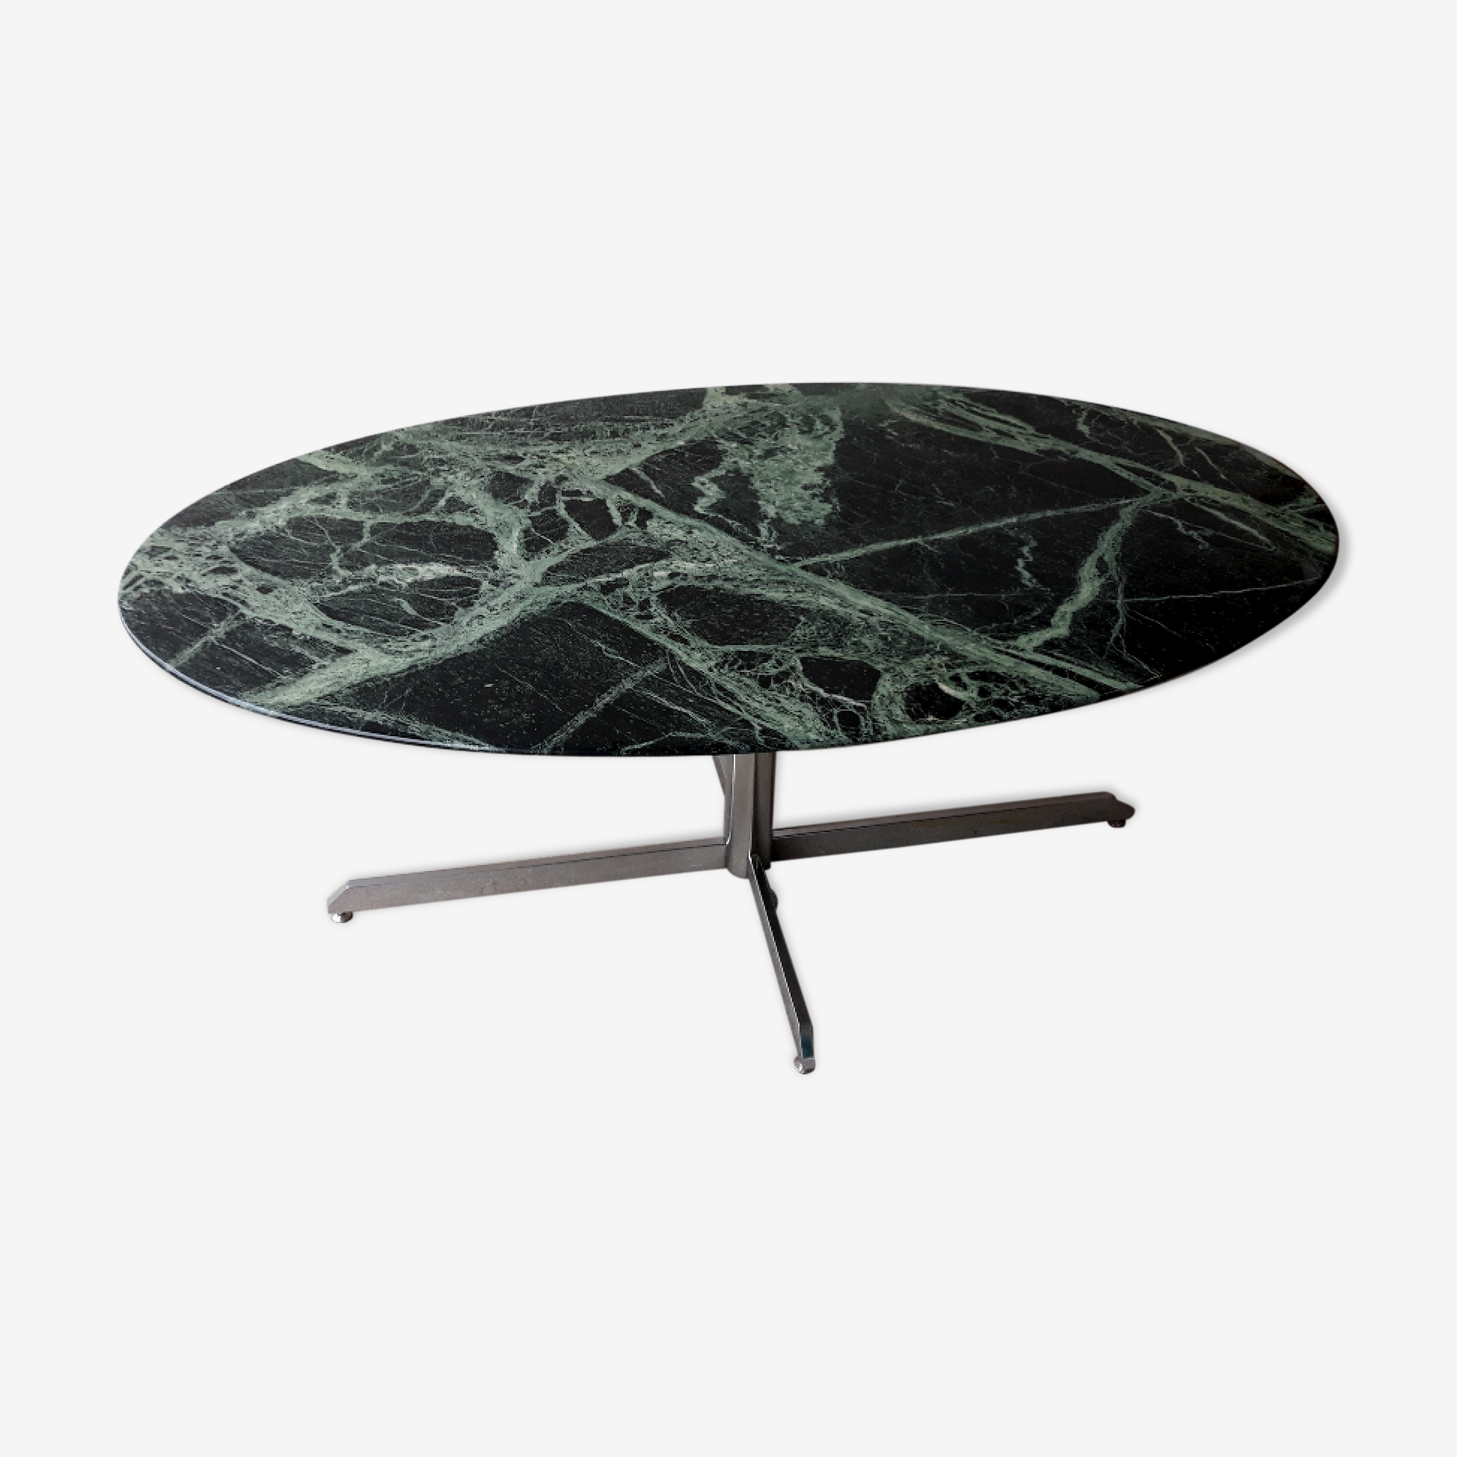 Table Roche Bobois from the 70